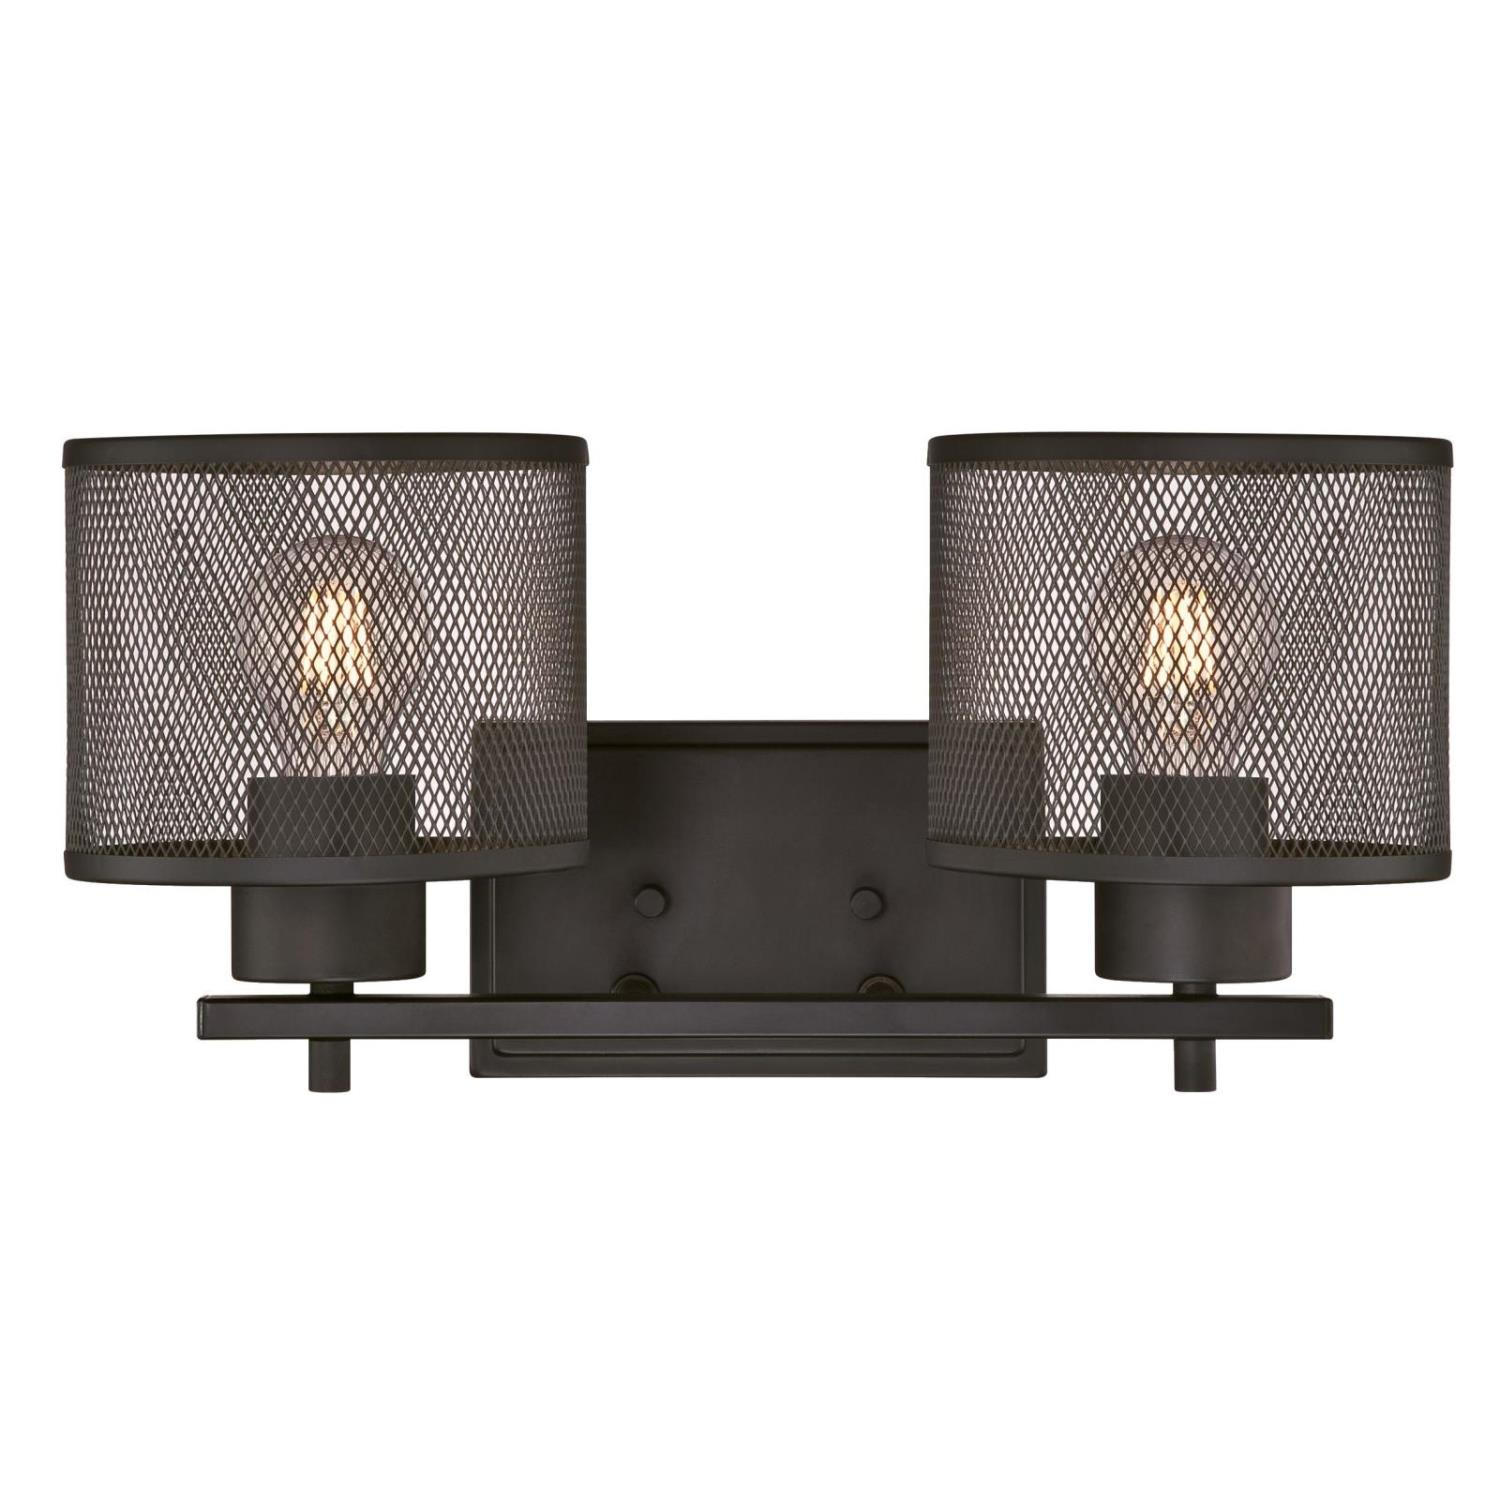 2 Light Wall Fixture Oil Rubbed Bronze Finish with Mesh Shades